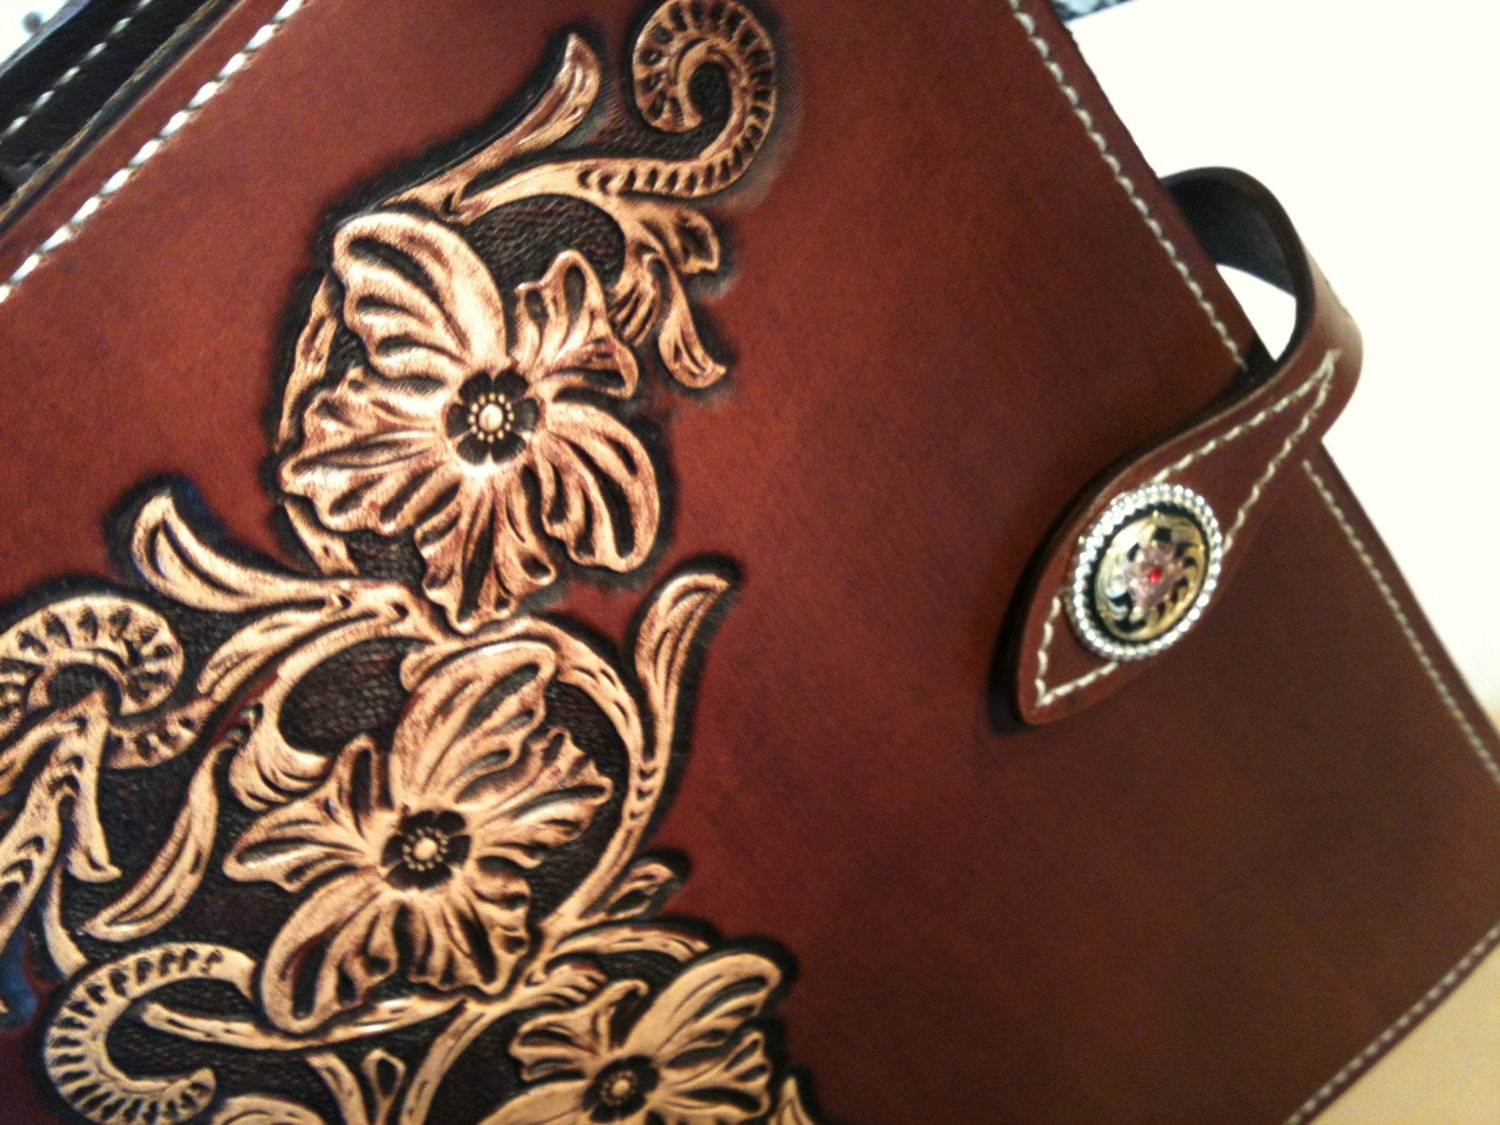 hand tooled leather bible or book cover